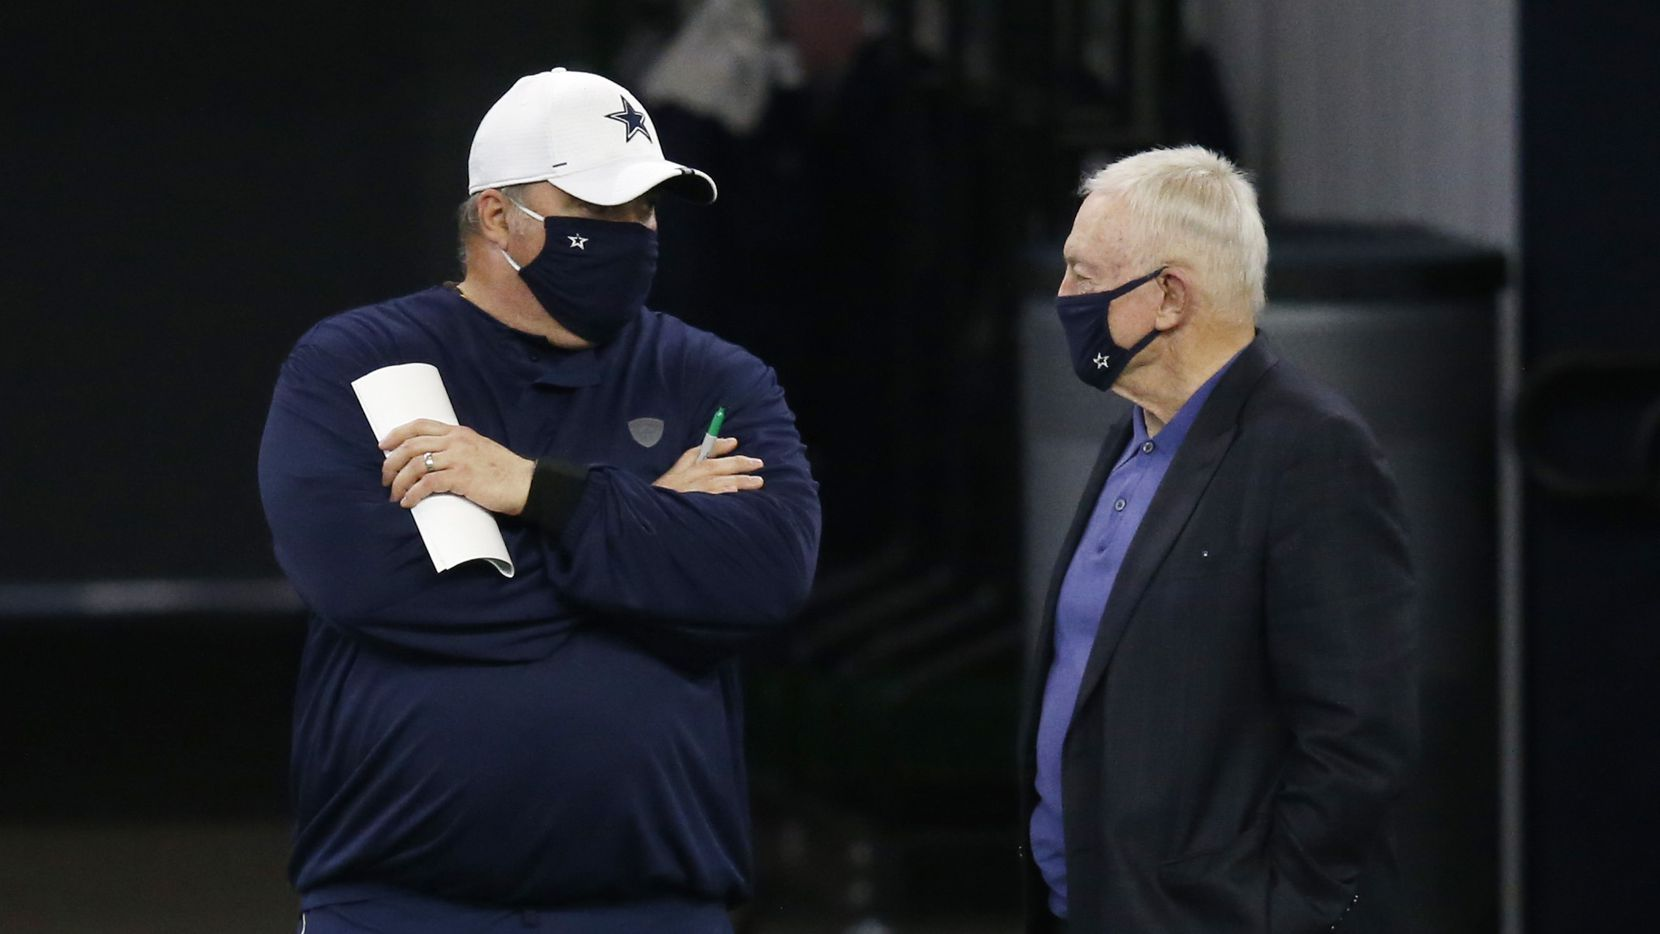 Dallas Cowboys head coach Mike McCarthy talks to Dallas Cowboys owner and general manager Jerry Jones on the sidelines in practice during training camp at the Dallas Cowboys headquarters at The Star in Frisco, Texas on Monday, August 31, 2020.